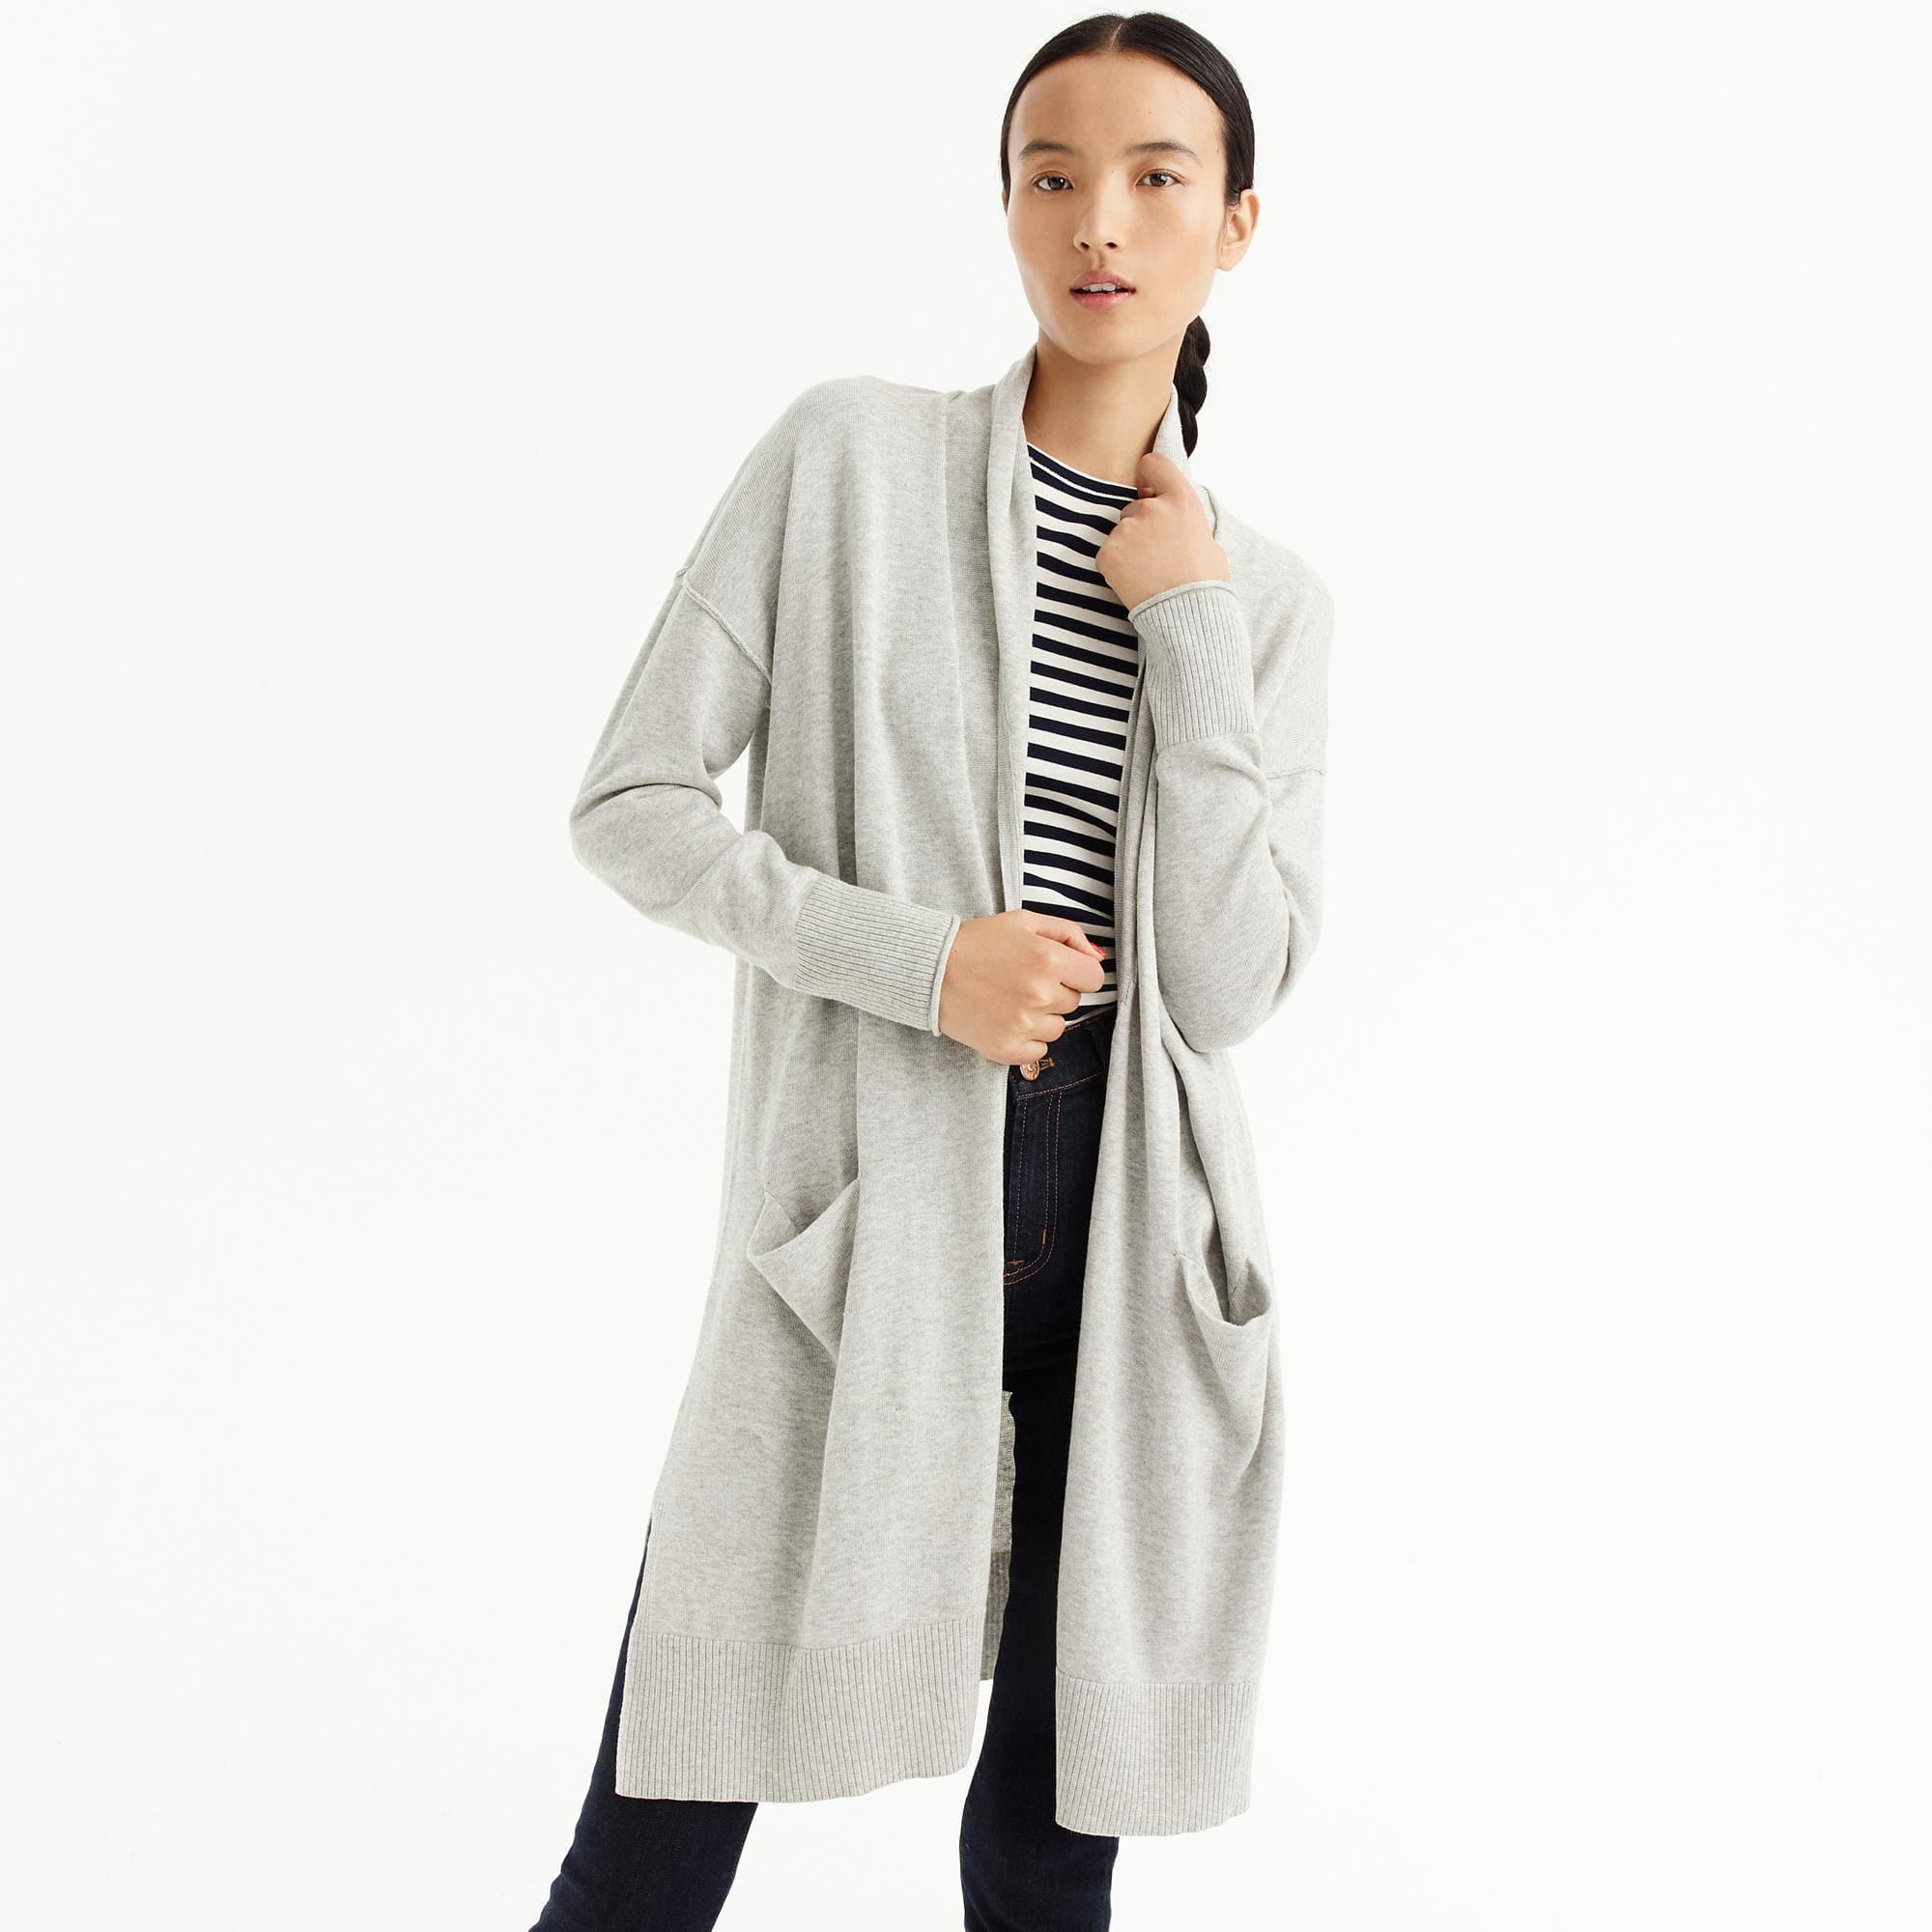 J.crew Long Open-front Cardigan Sweater in Gray | Lyst